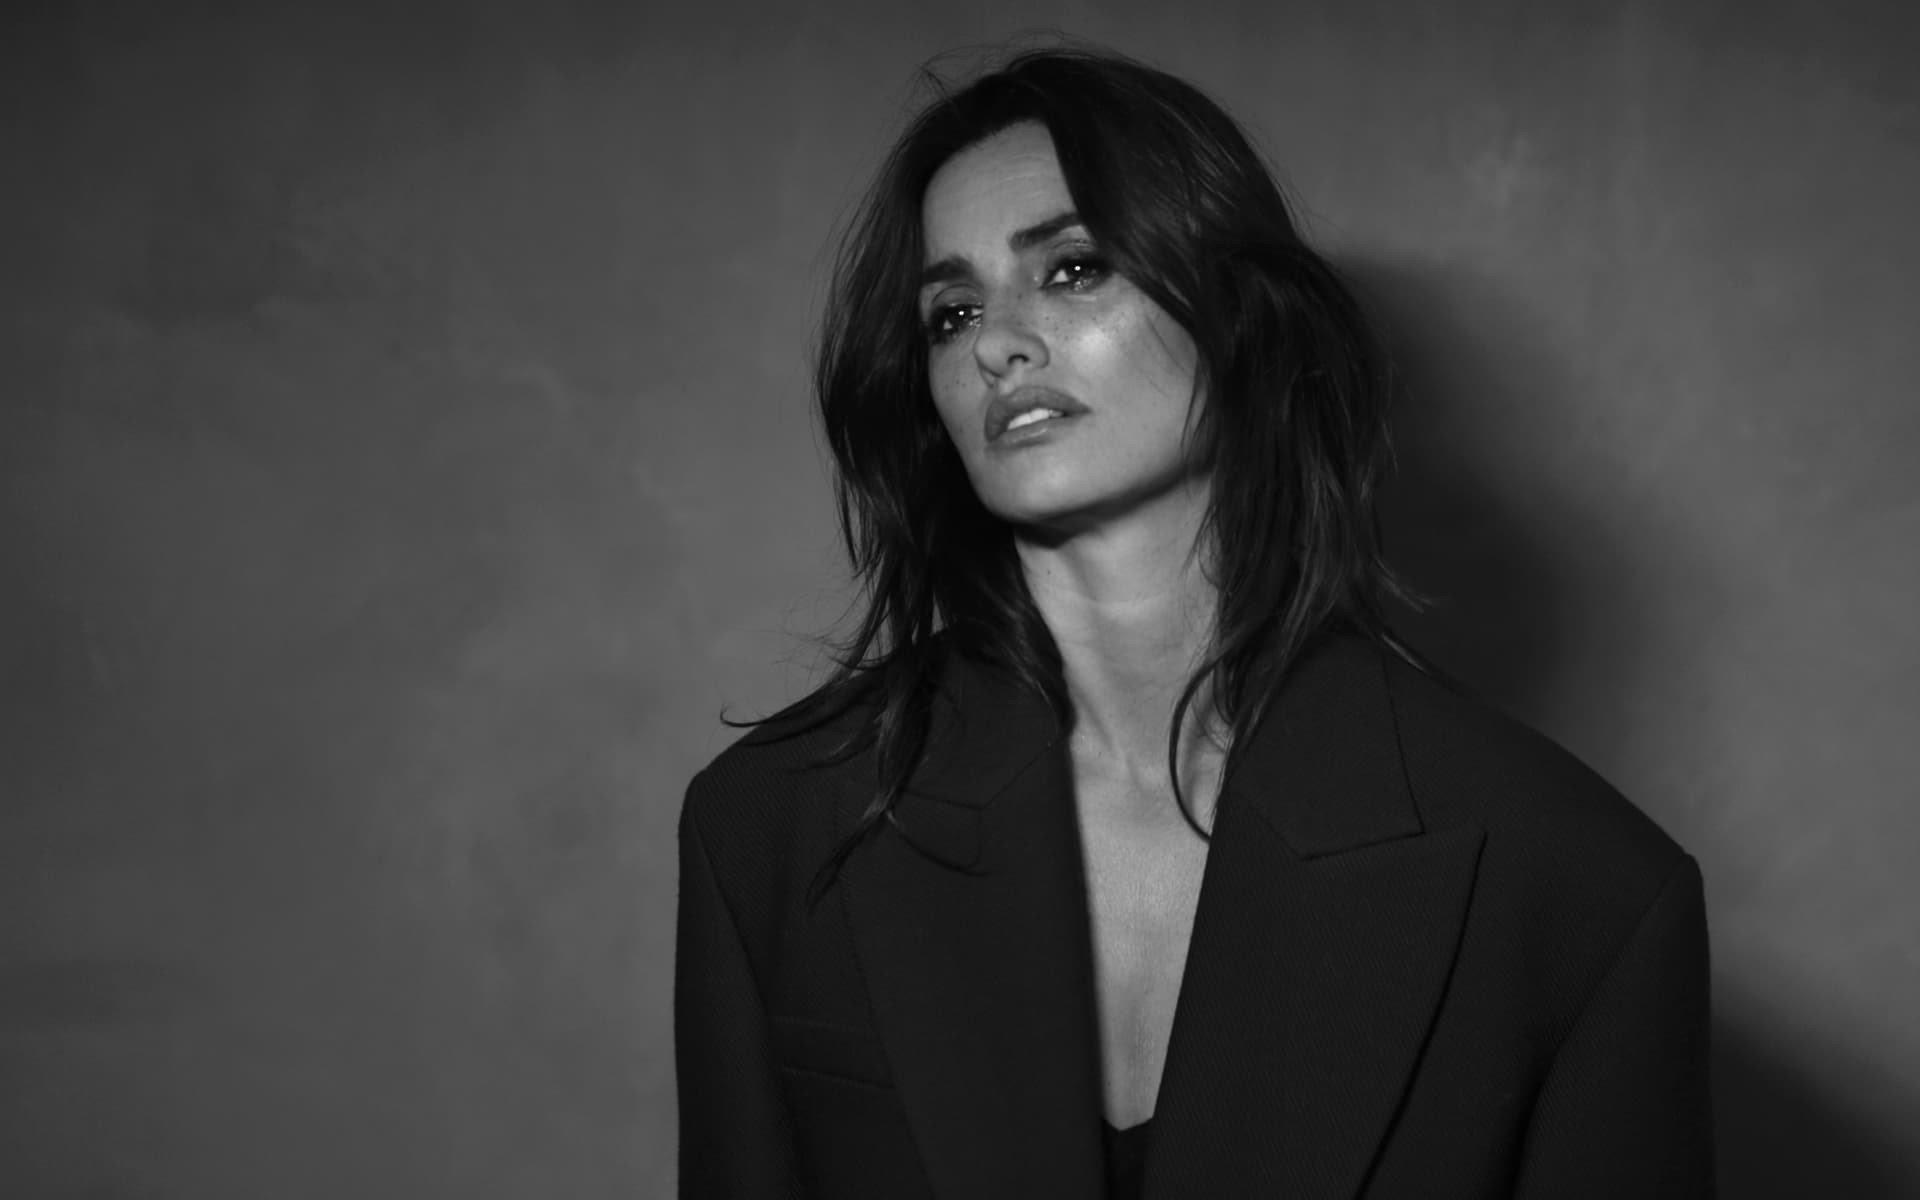 Download The Car Wallpaper Penelope Cruz Pictures Wallpapers Images Download For